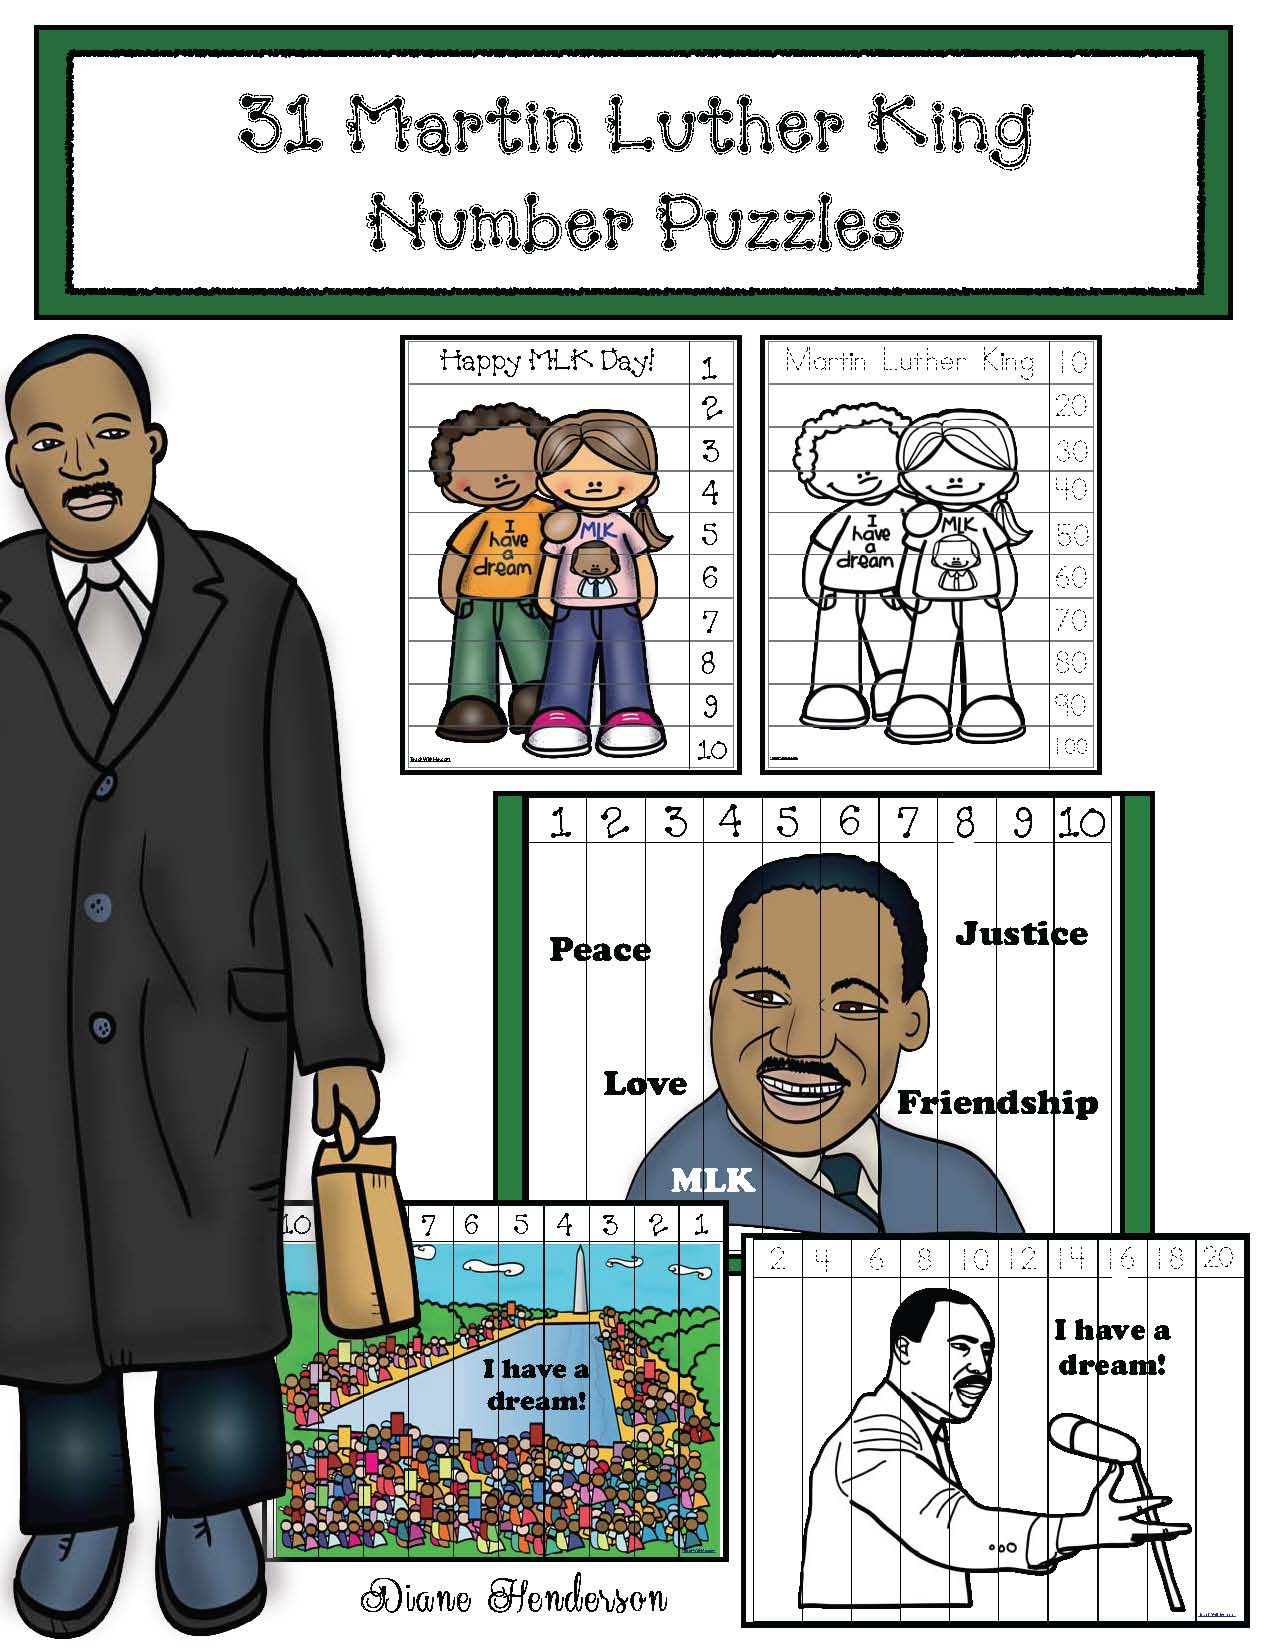 MLK activities, martin luther king activities, martin luther king crafts, MLK crafts, writing prompts for January, writing prompts for martin luther king day, word work for january, daily 5 for january, number puzzles, skip counting activities, skip counting crafts, january bulletin board ideas, MLK vocabulary words, Martin Luther King vocabulary